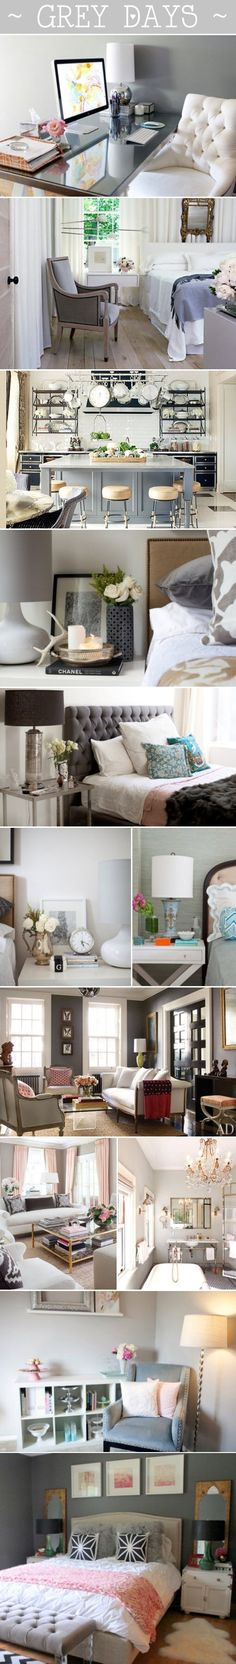 grey and other great home decorating ideas